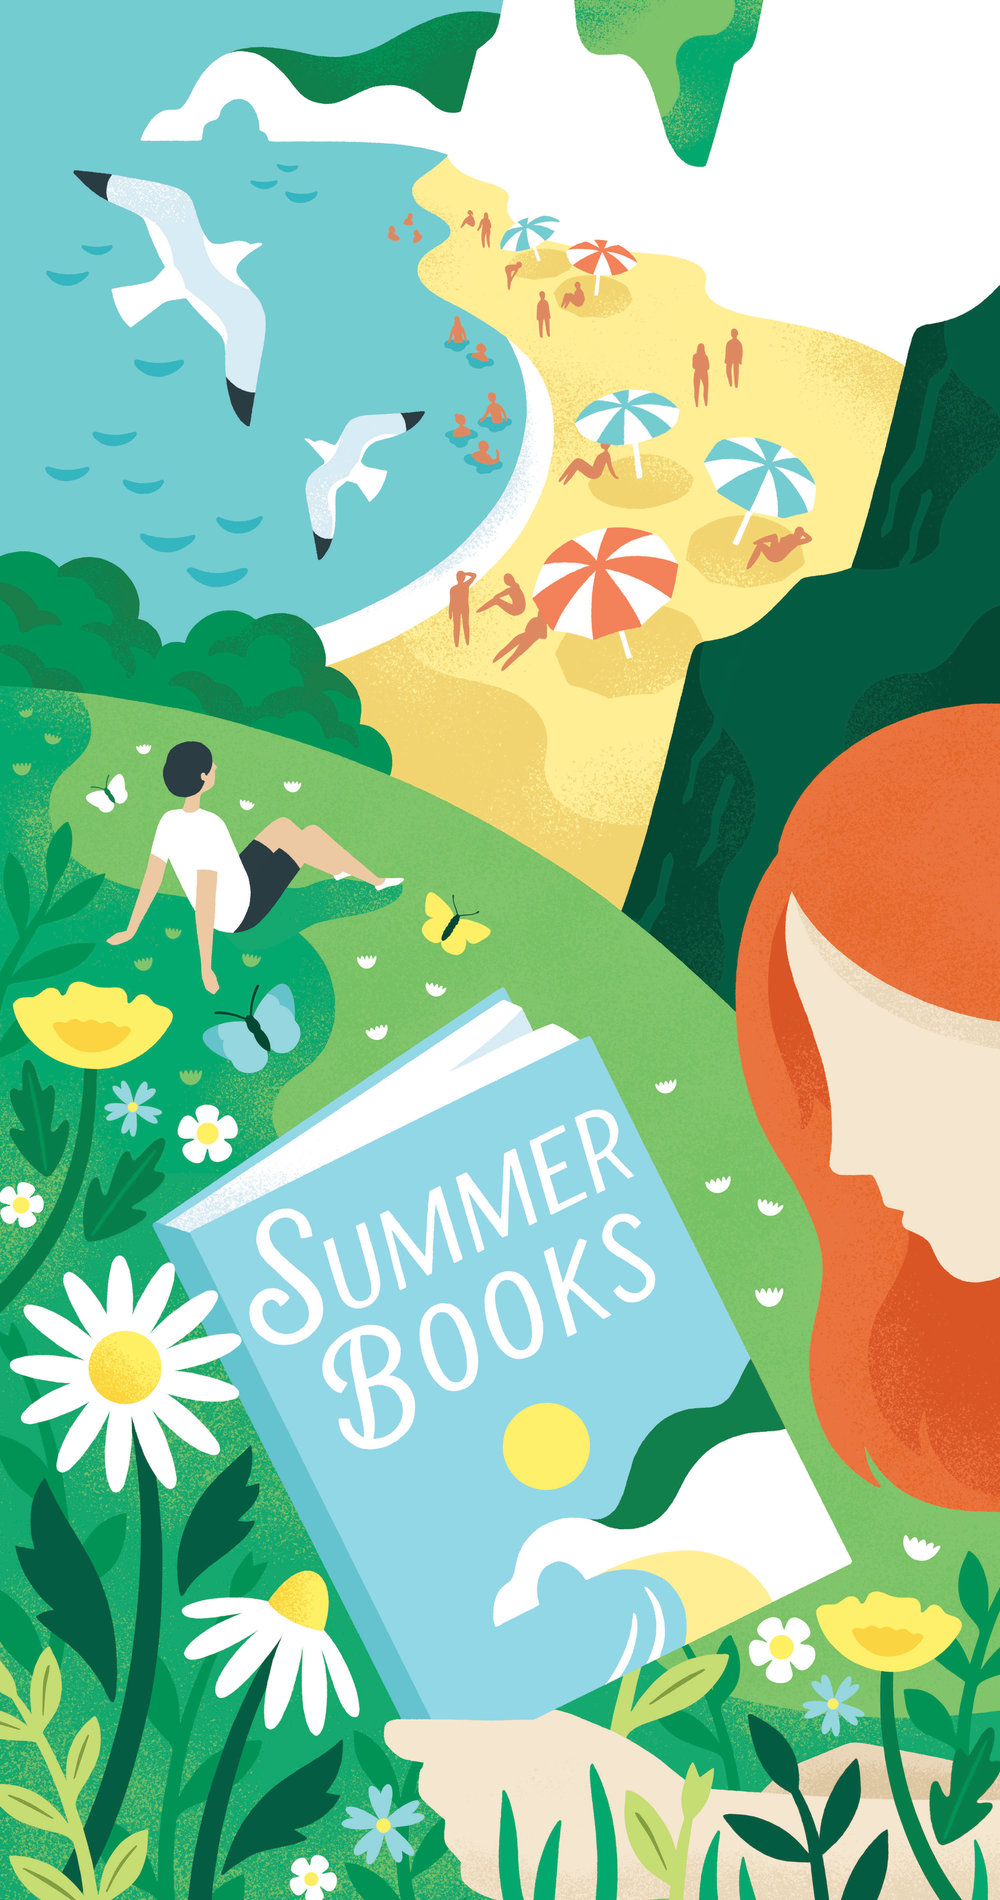 WSJ-Summer-books-cover.jpg